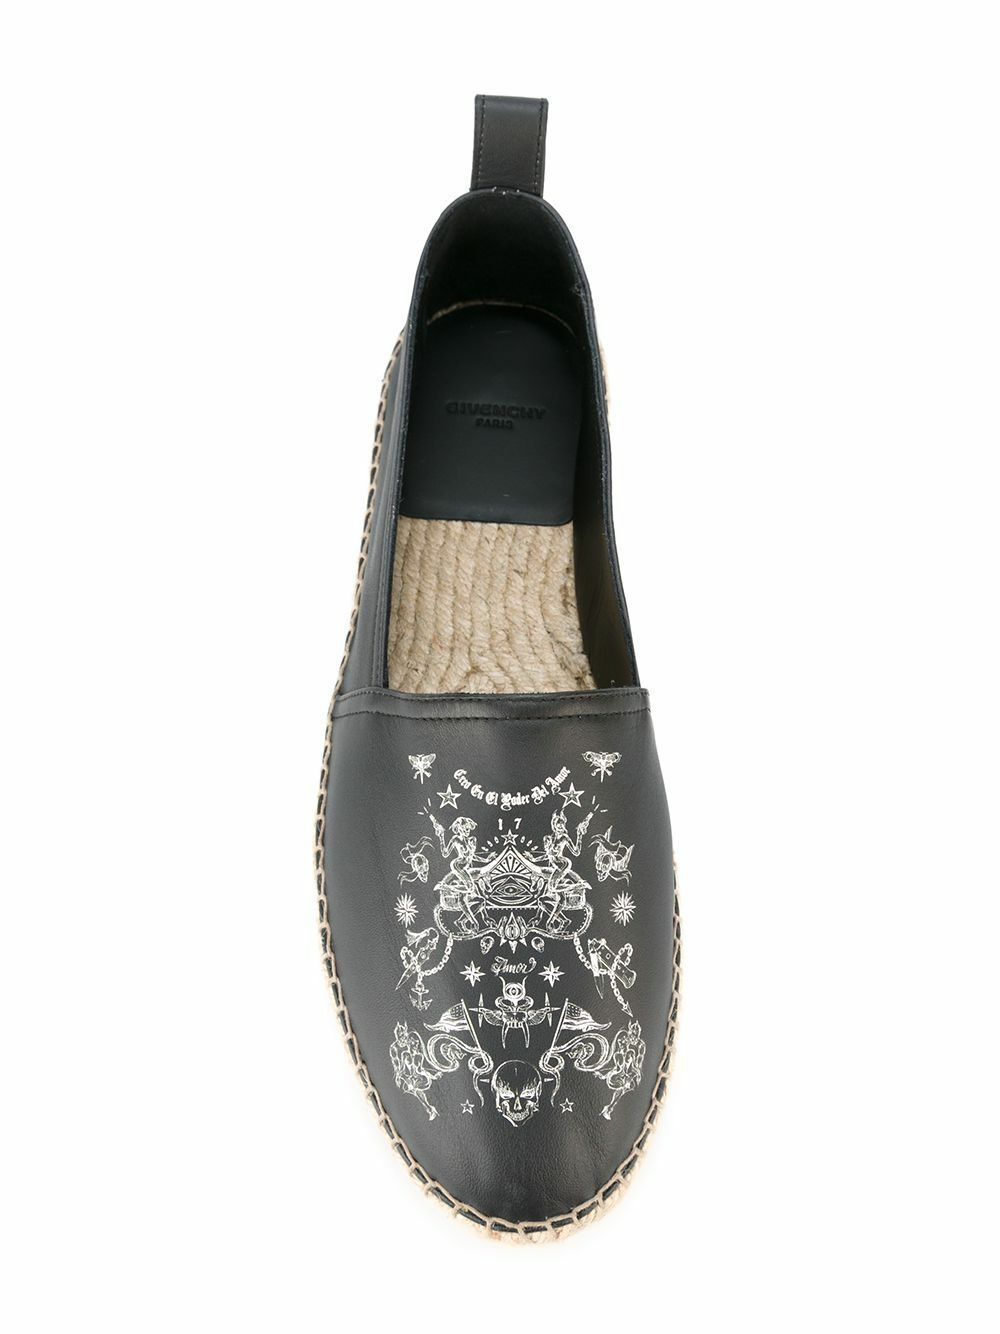 Authentic Givenchy UK7 neri in pelle stampata Espadrillas ci UK7 Givenchy 8 EU41 RRP 584480